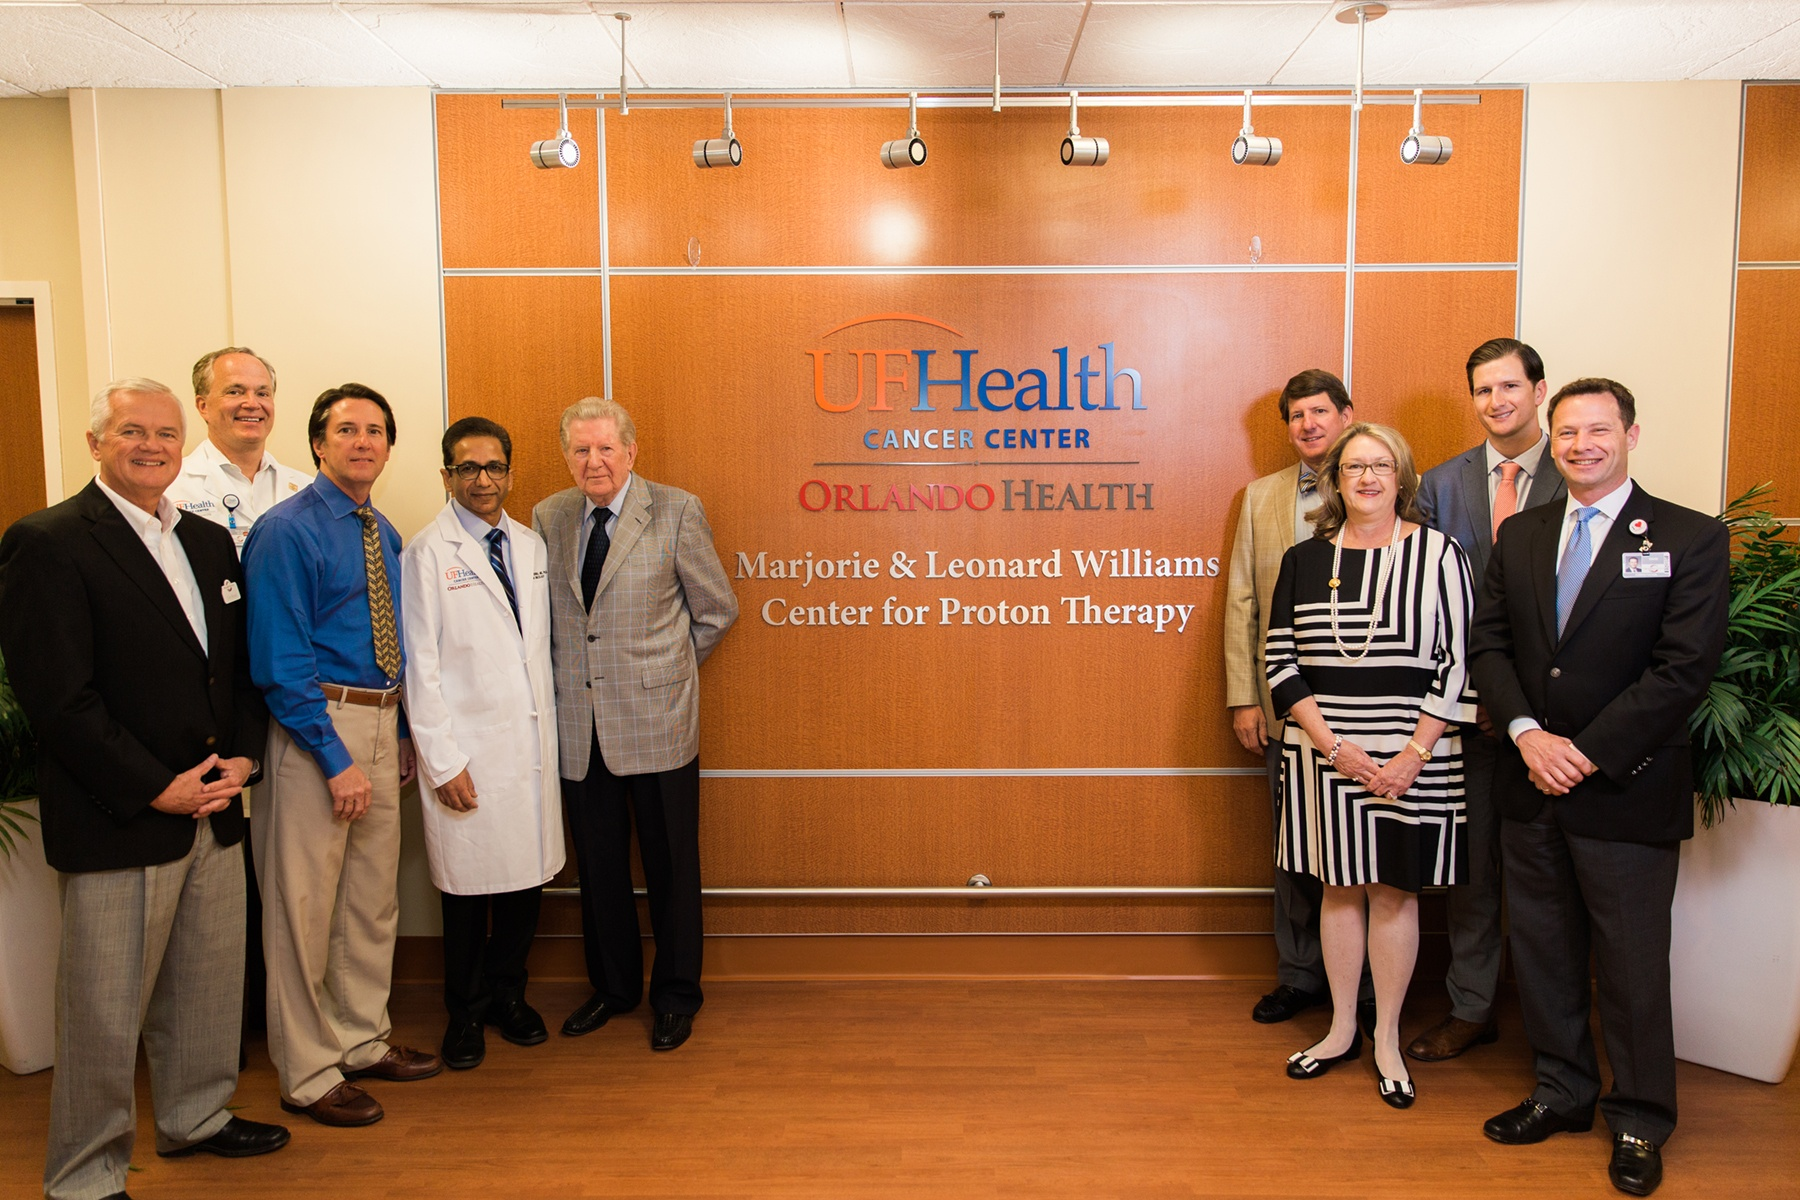 New proton therapy cancer treatment center opens in Orlando